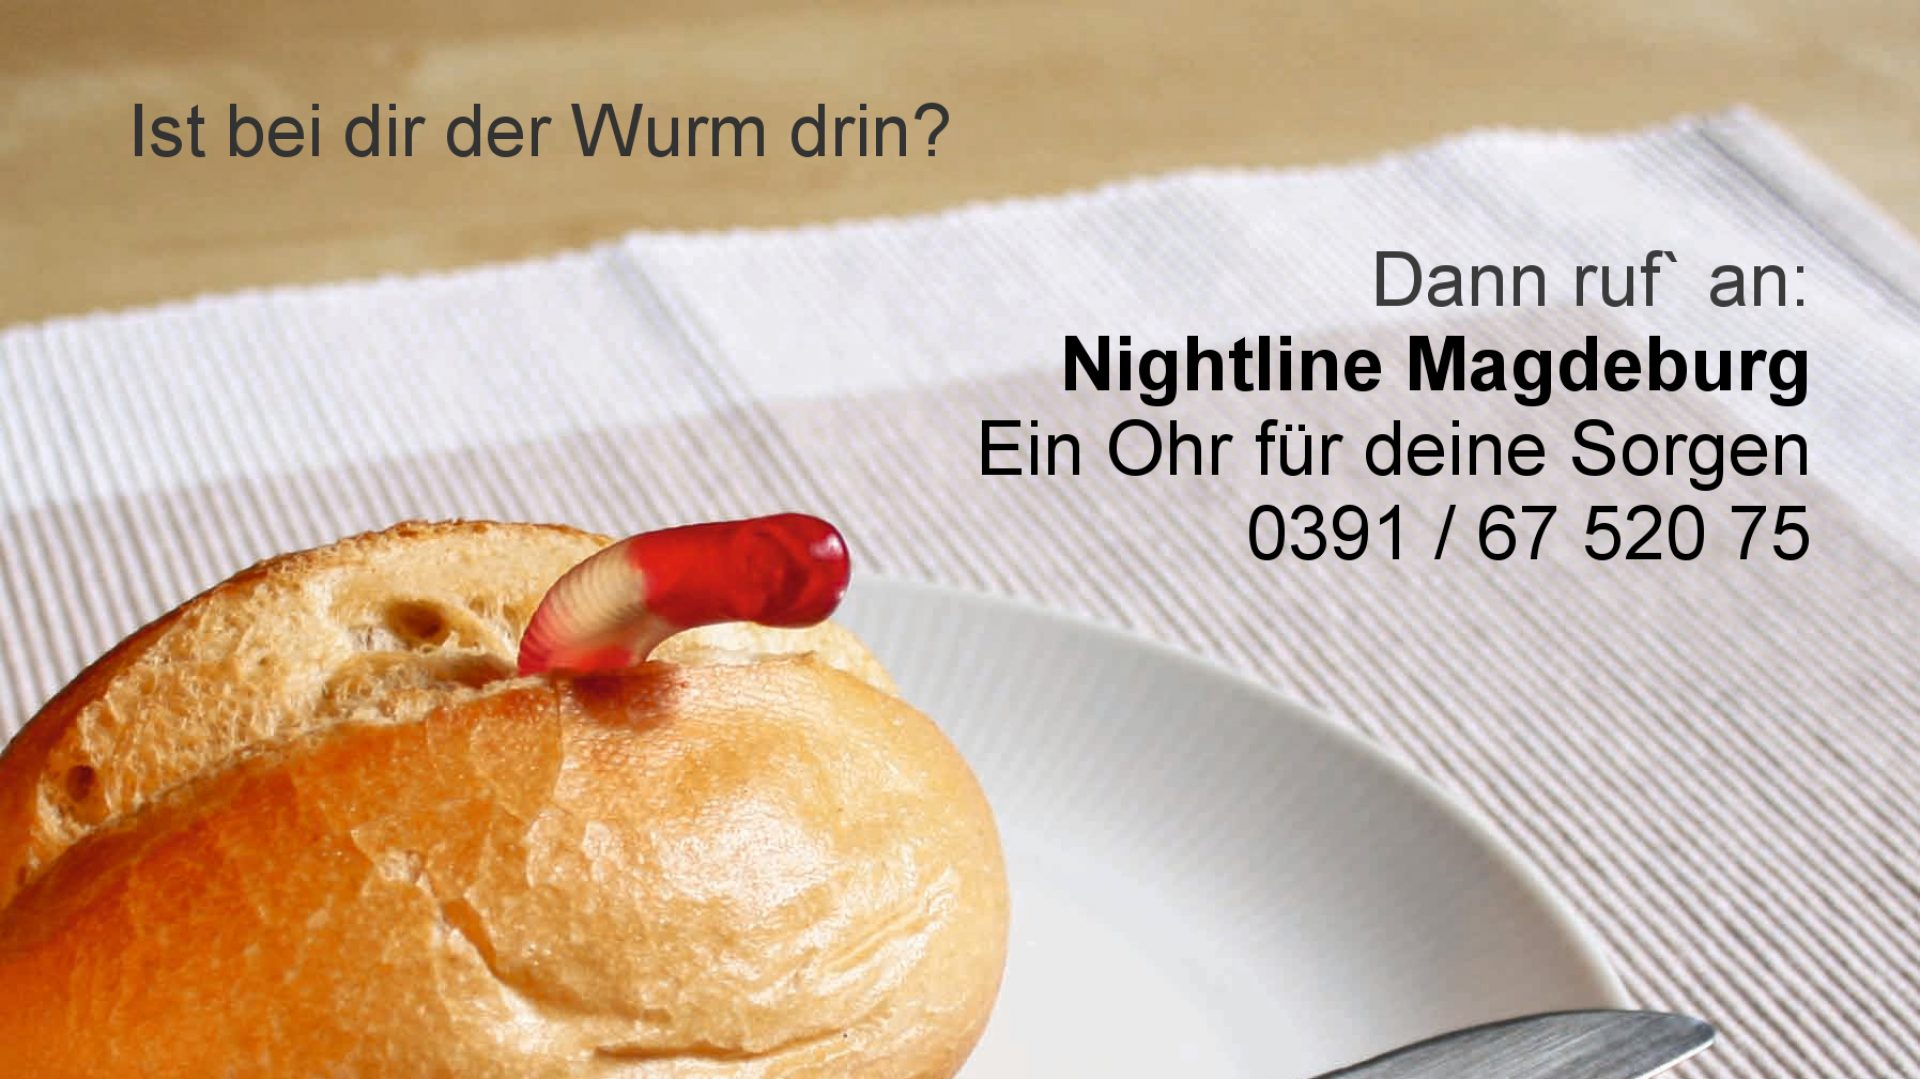 Nightline Magdeburg